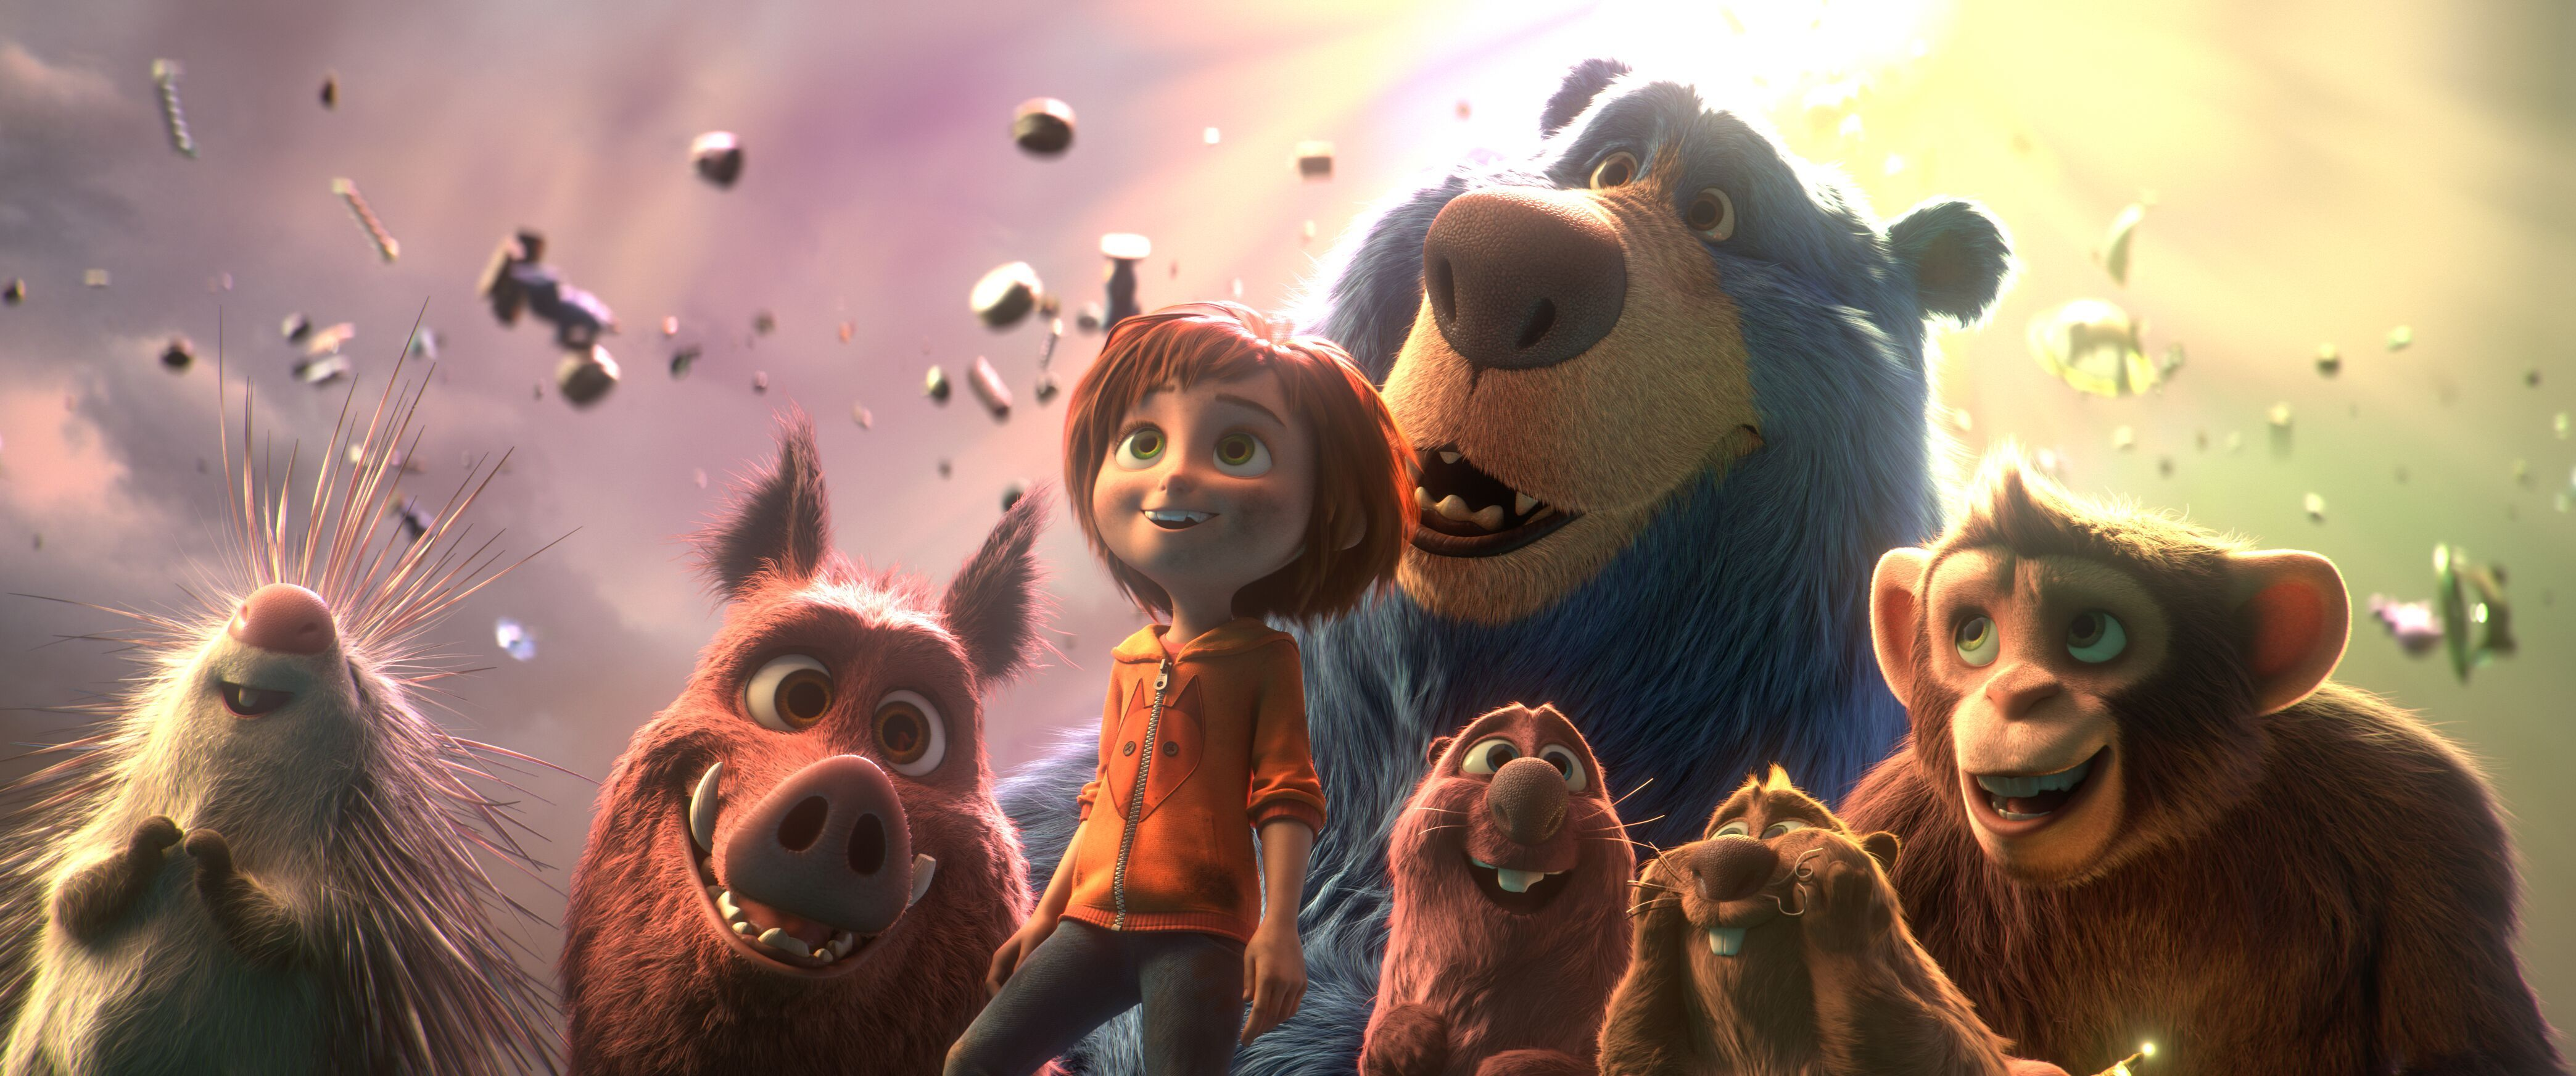 Wonder Park is a family friendly movie focused around a little girl's imagination. Right now Wonder Park is giving away merch. You could be a winner! Don't forget to check out Wonder Park in theaters now with your family. #WonderPark #ad & #rwm